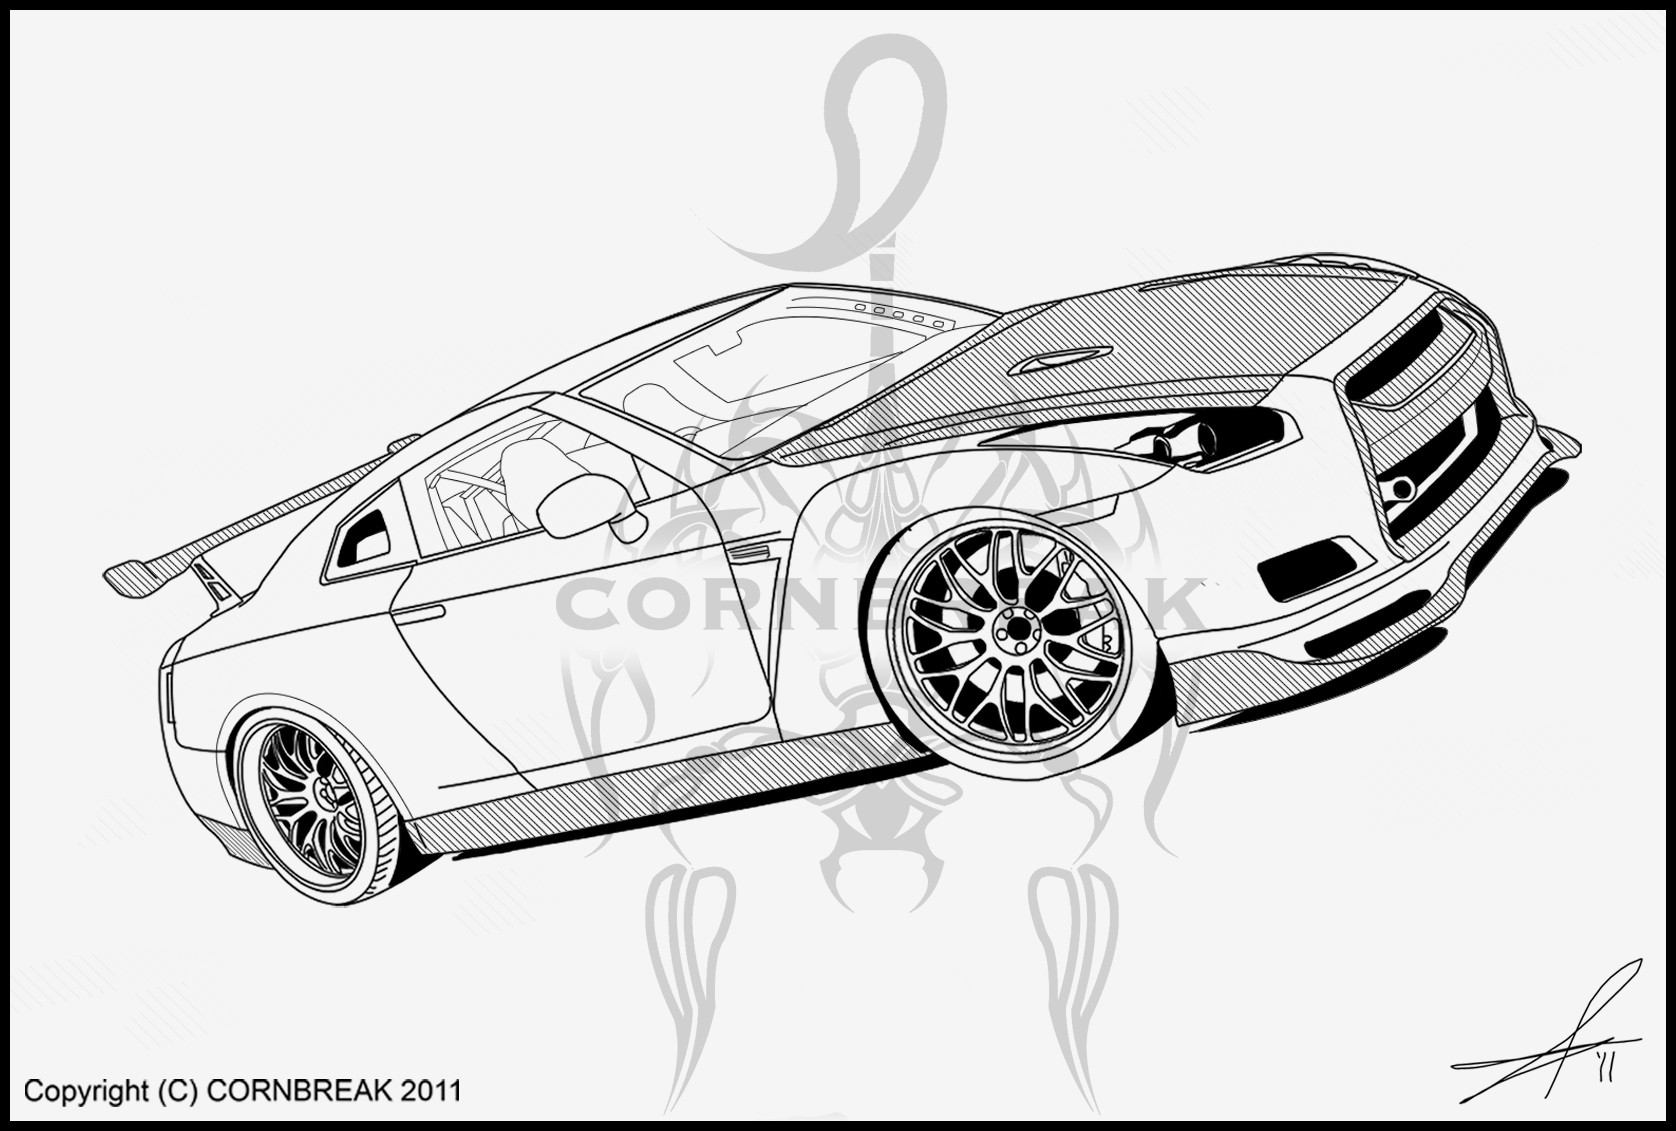 nissan gtr colouring pages nissan gtr coloring pages at getdrawings free download pages gtr nissan colouring